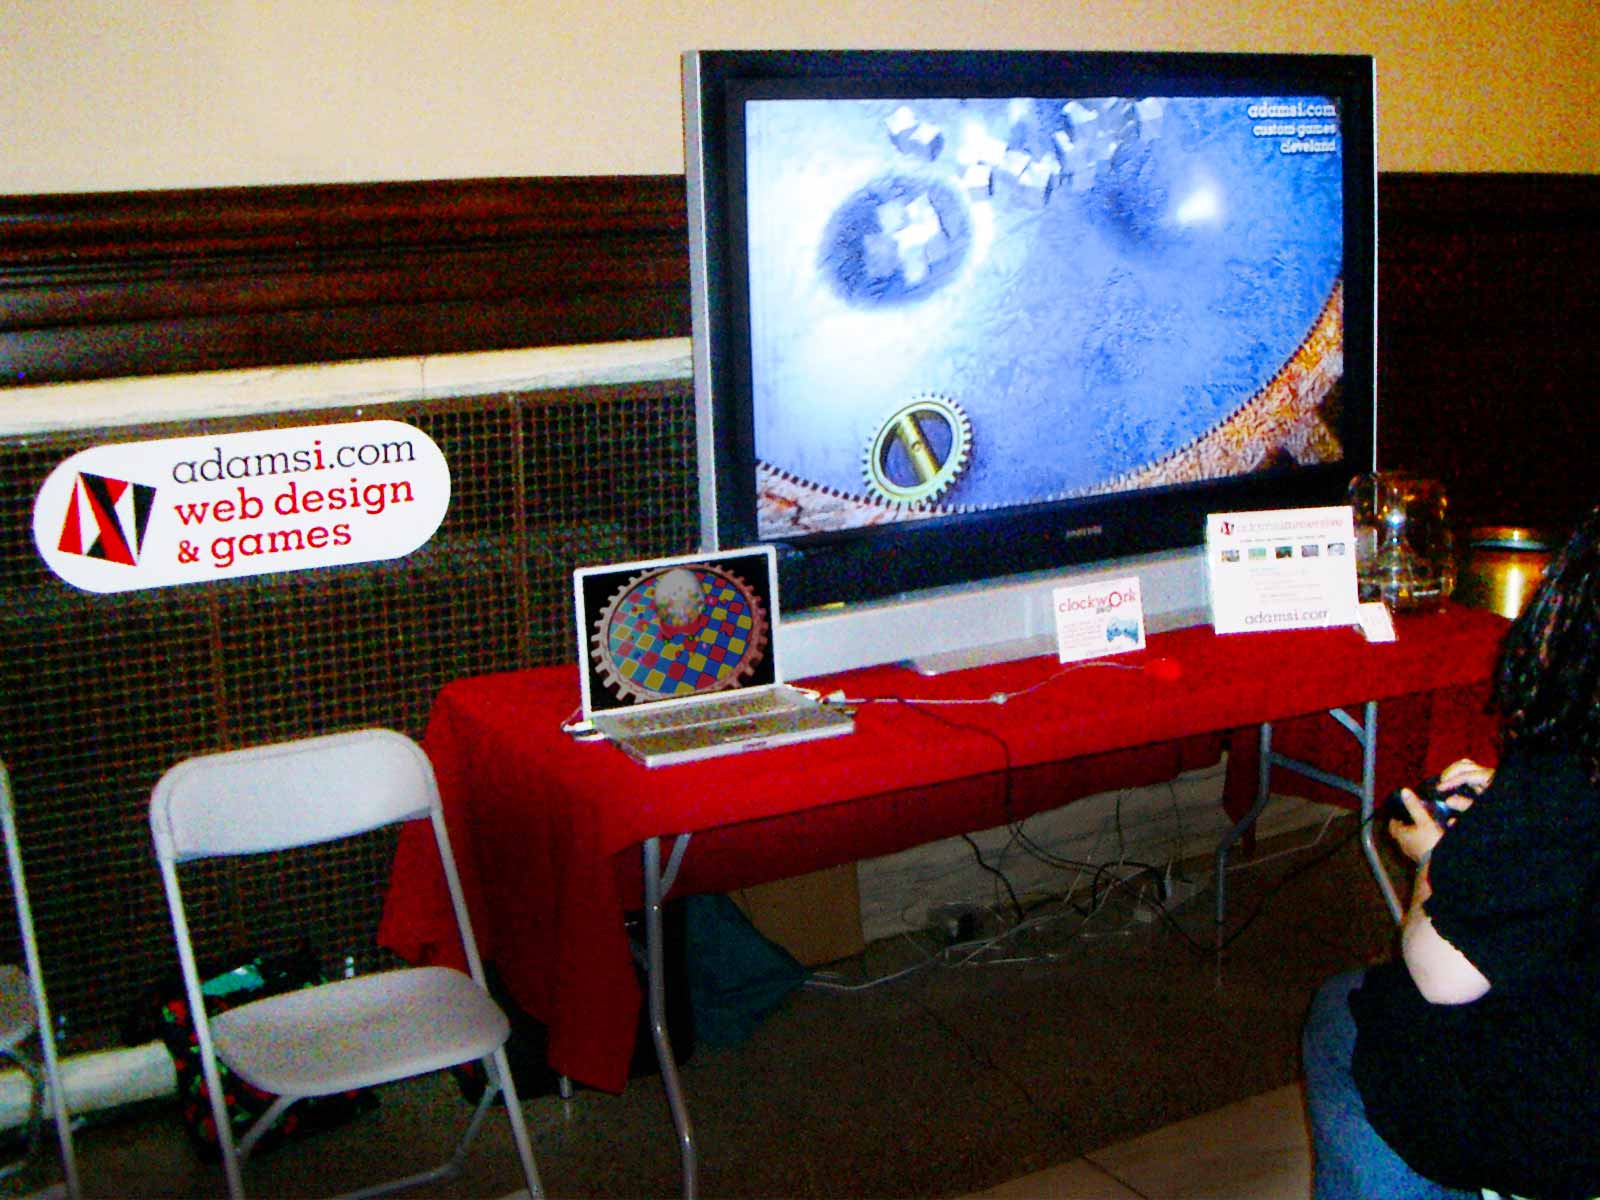 Photo: woman with gamepad playing Mac game on large screen at technology festival